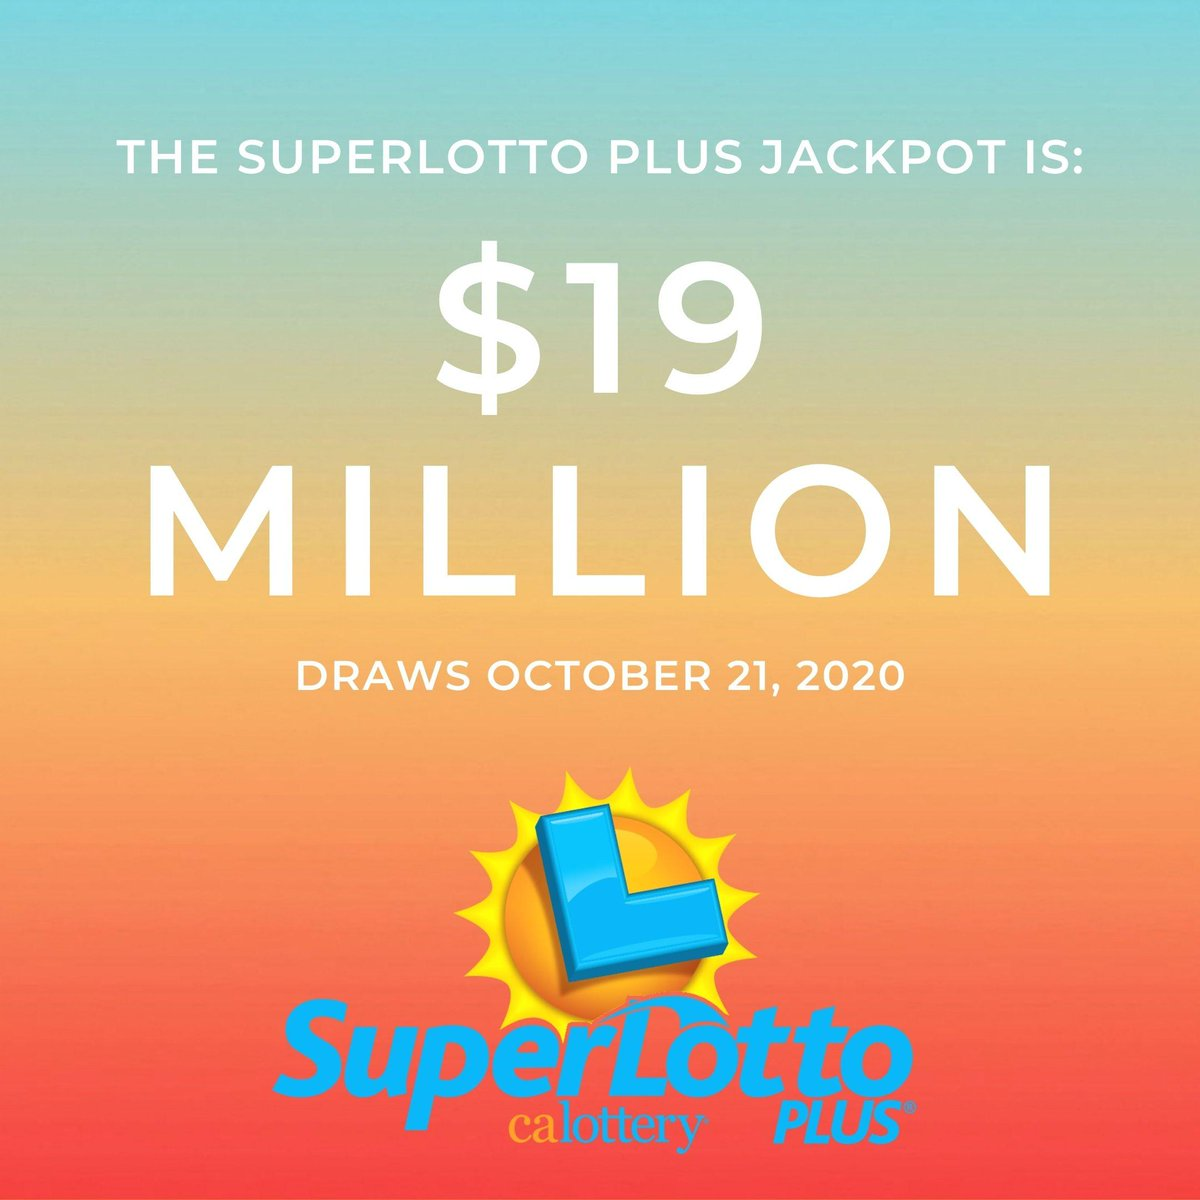 Tonight's #SuperLottoPlus jackpot is now $19 million dollars. There's still time to get your ticket! #JackpotAlert #CALottery https://t.co/v4j7raNl3o